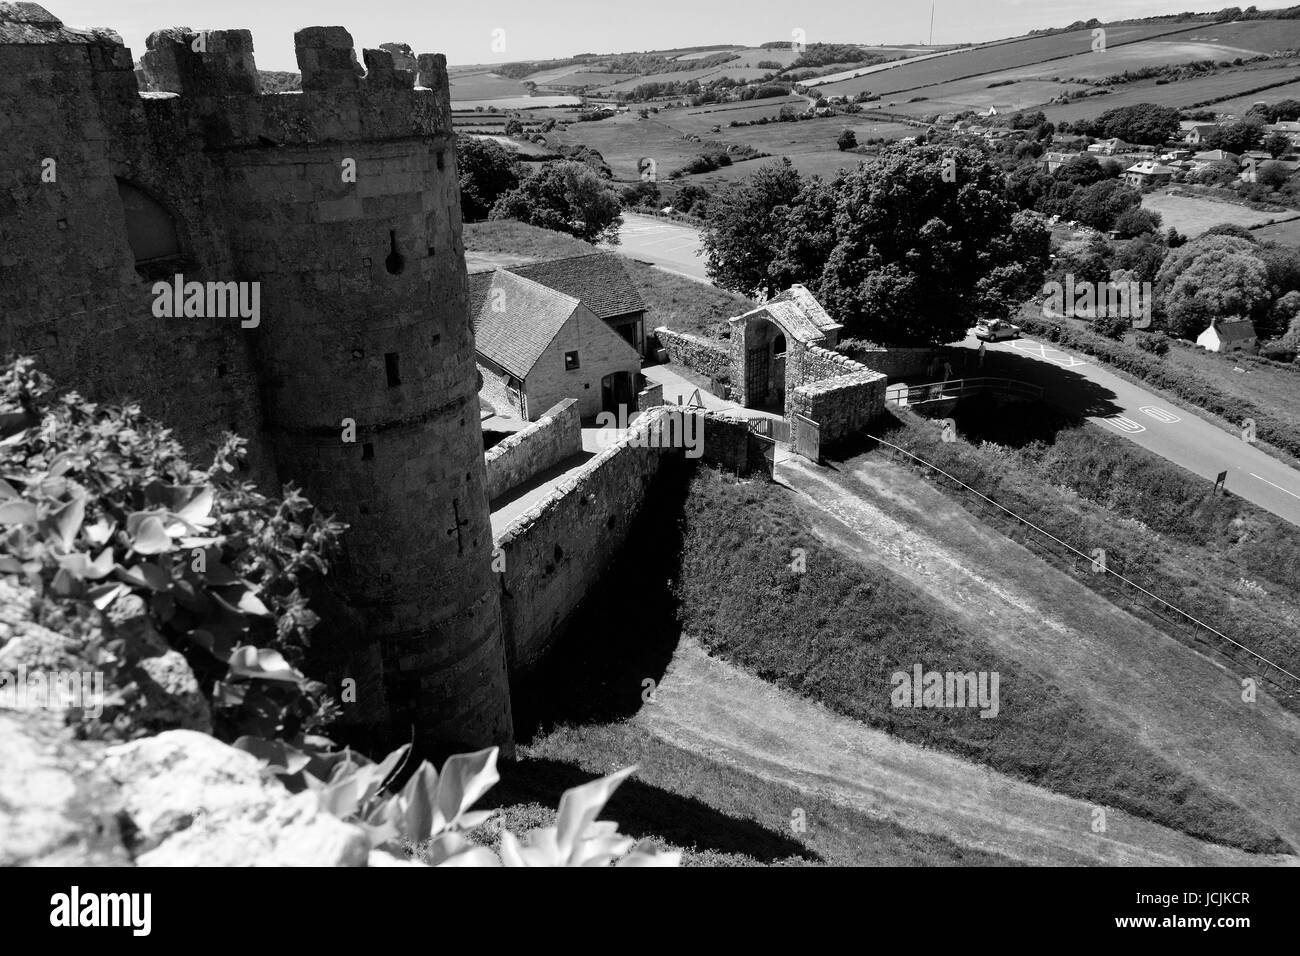 WALL RIGHT SIDE GATEHOUSE. - Stock Image